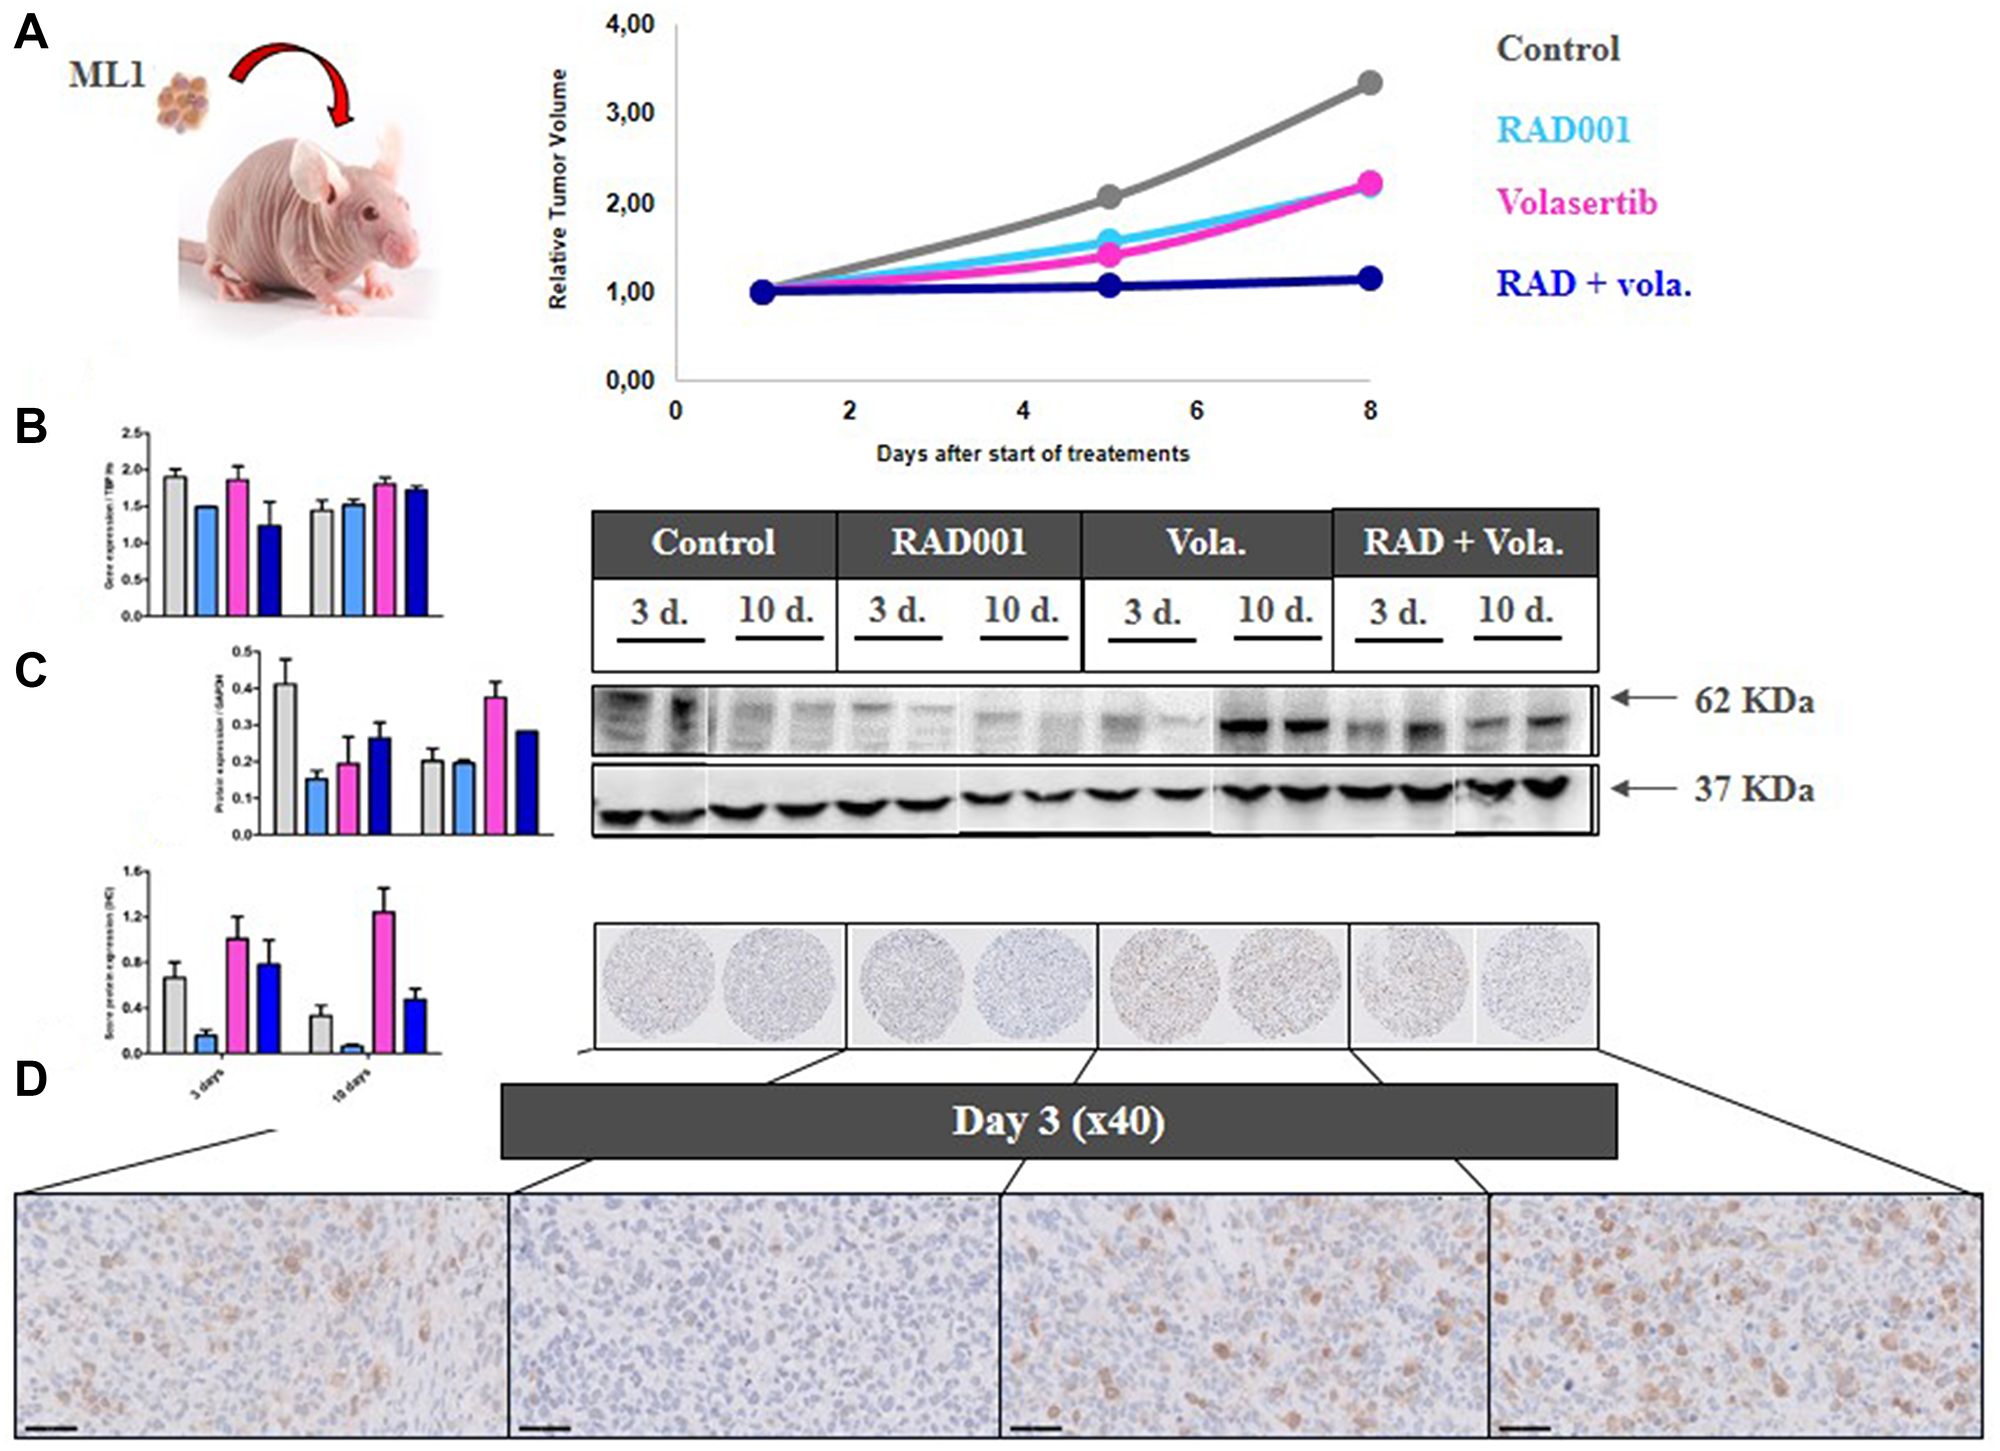 PD study in ML1 PDX and PLK1 expression.